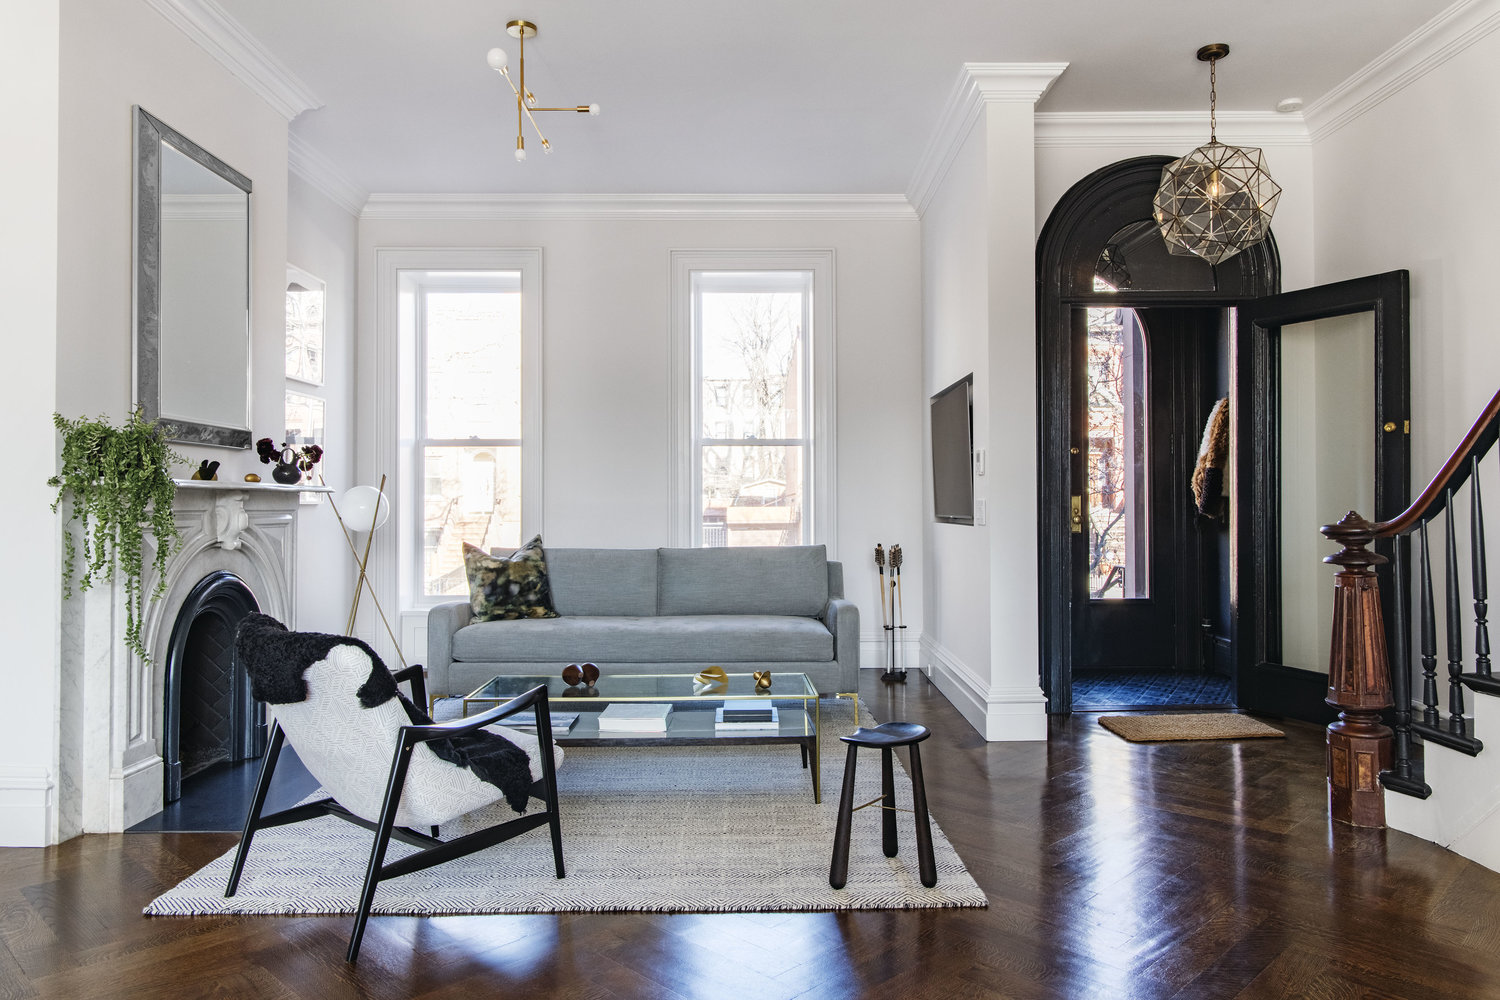 10 Small Living Room Ideas to Make 300 Square Feet Feel Like a Mansion | Hunker